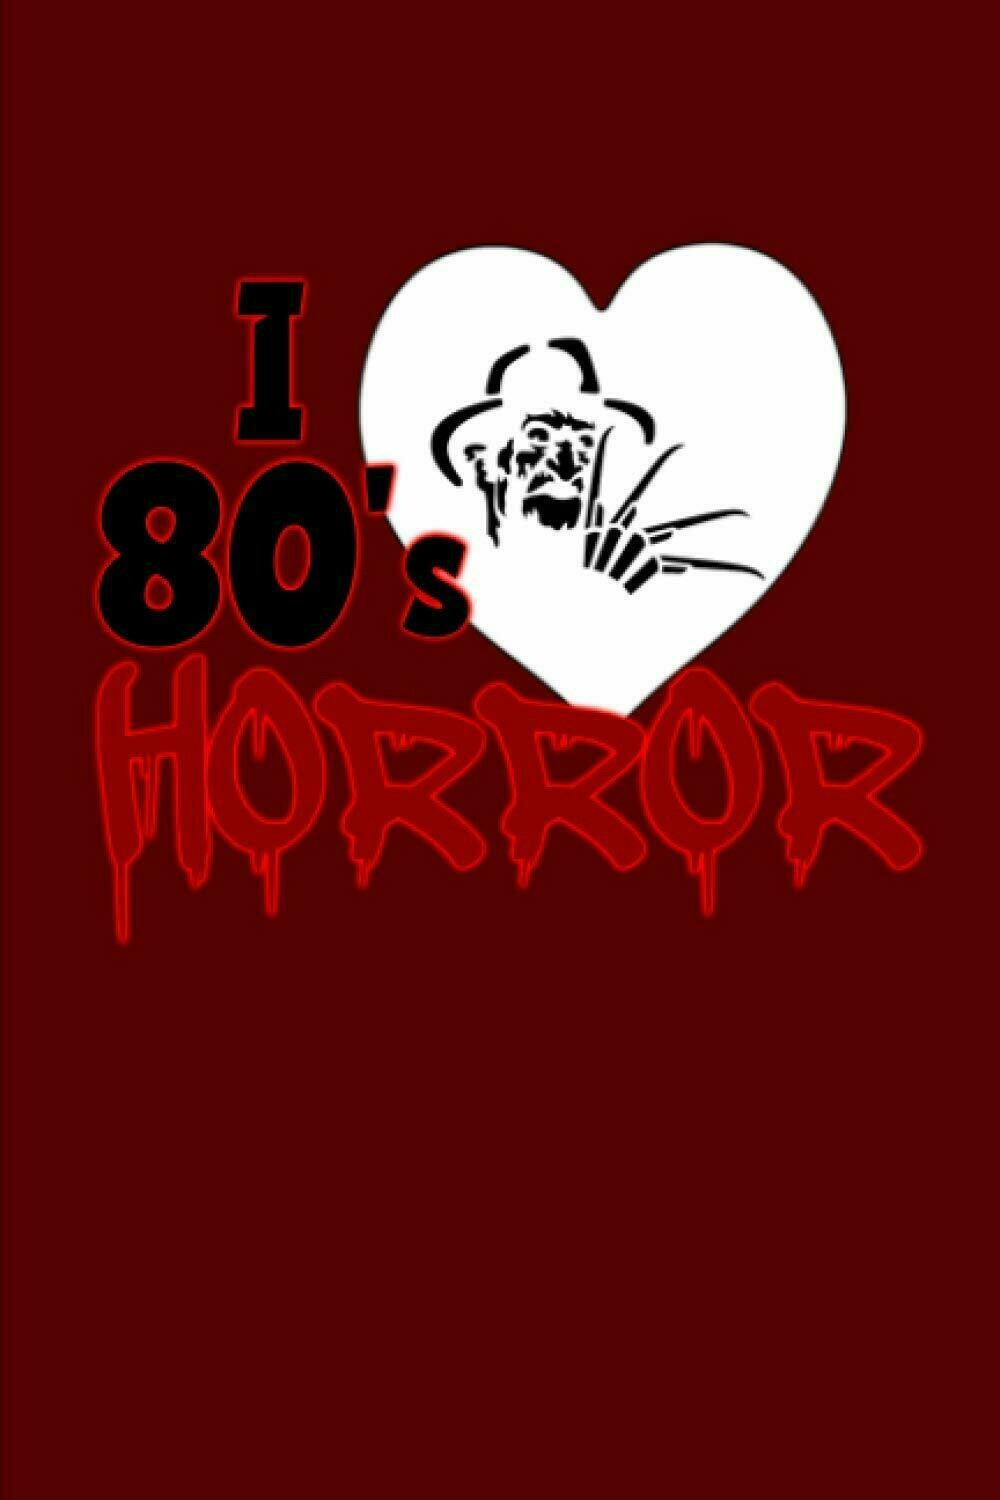 I LOVE 80s HORROR Luxury Lined Journal - Diary Notebook Writing Paper Note Pad Book Horror Movie Prop Replica A Nightmare on Elm Street Freddy Krueger